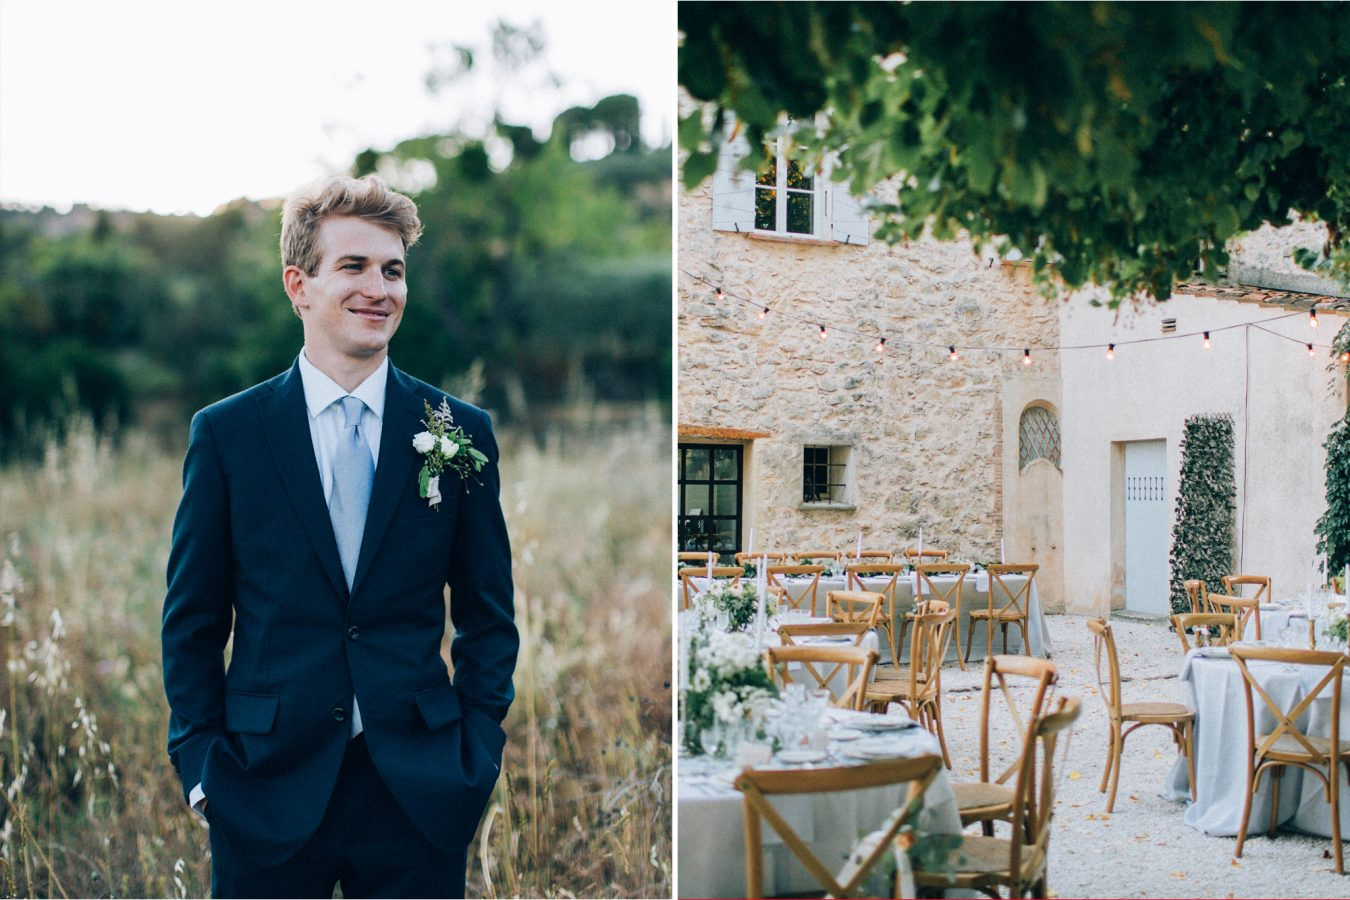 ingridlepan - wedding photographer - french riviera